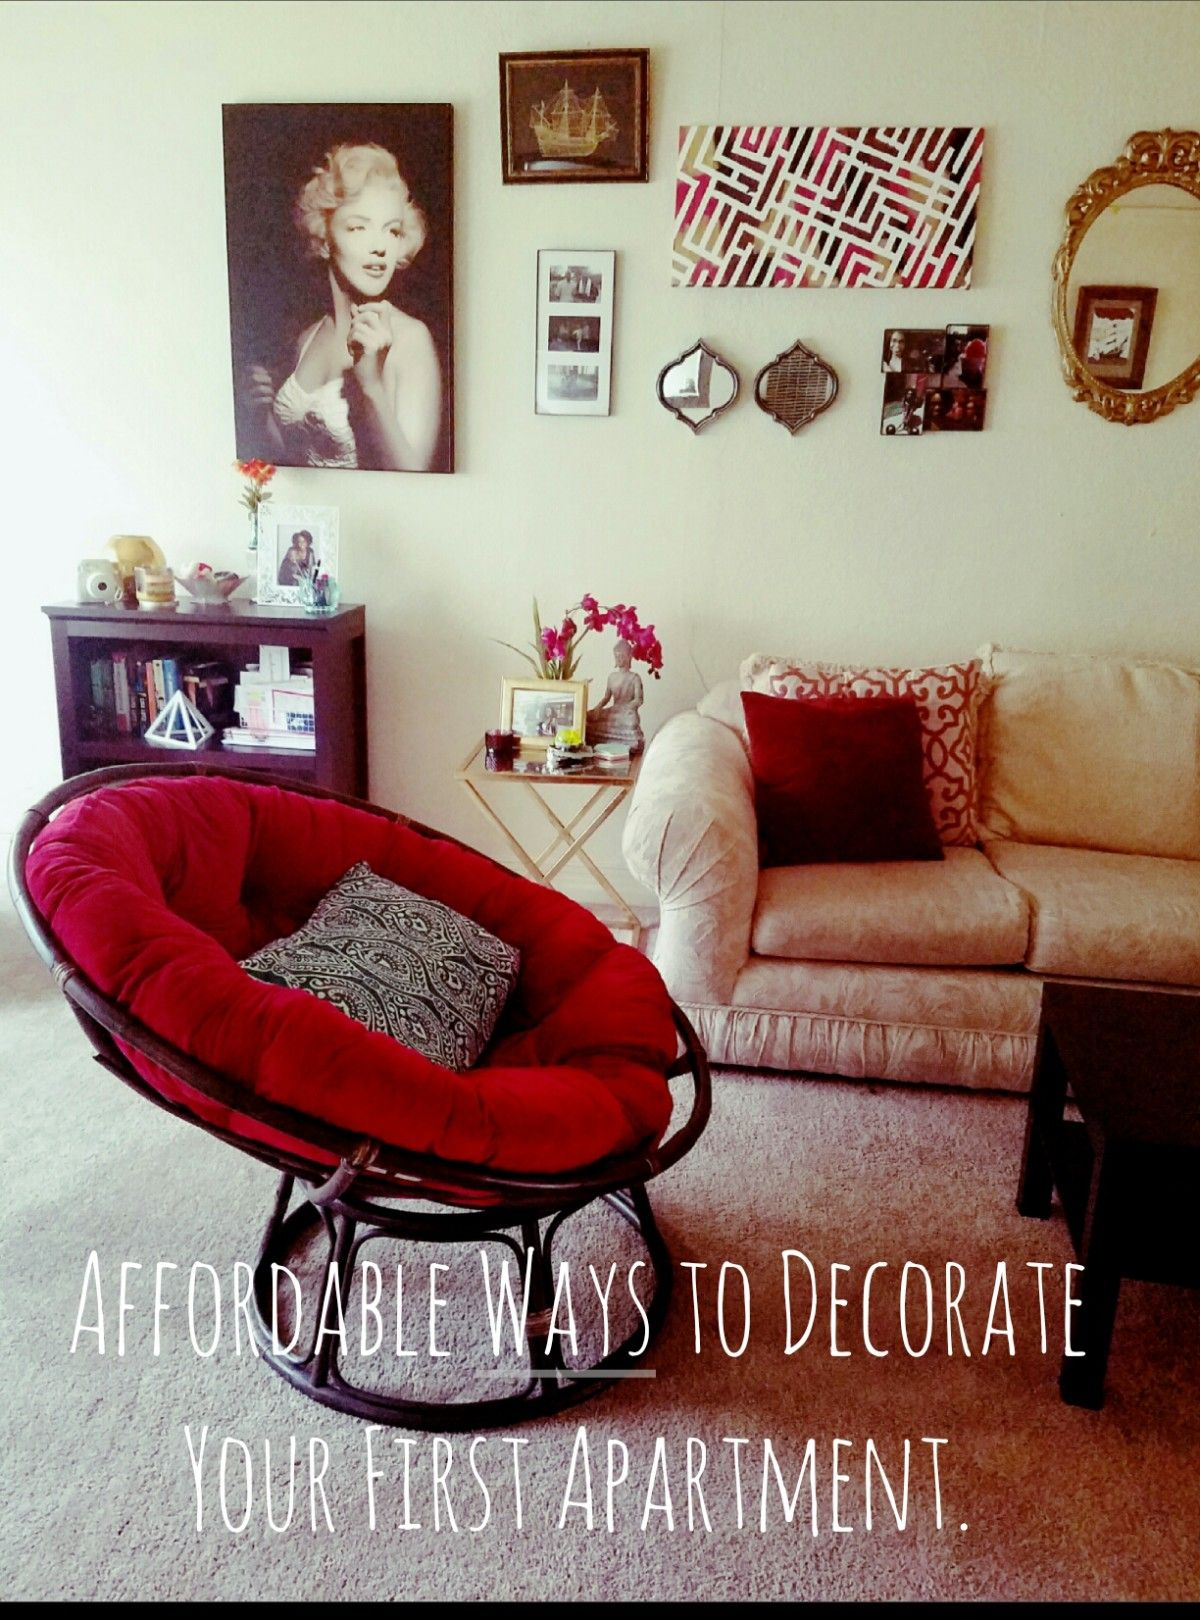 Affordable Ways to Decorate Your First Apartment | Pinterest ...